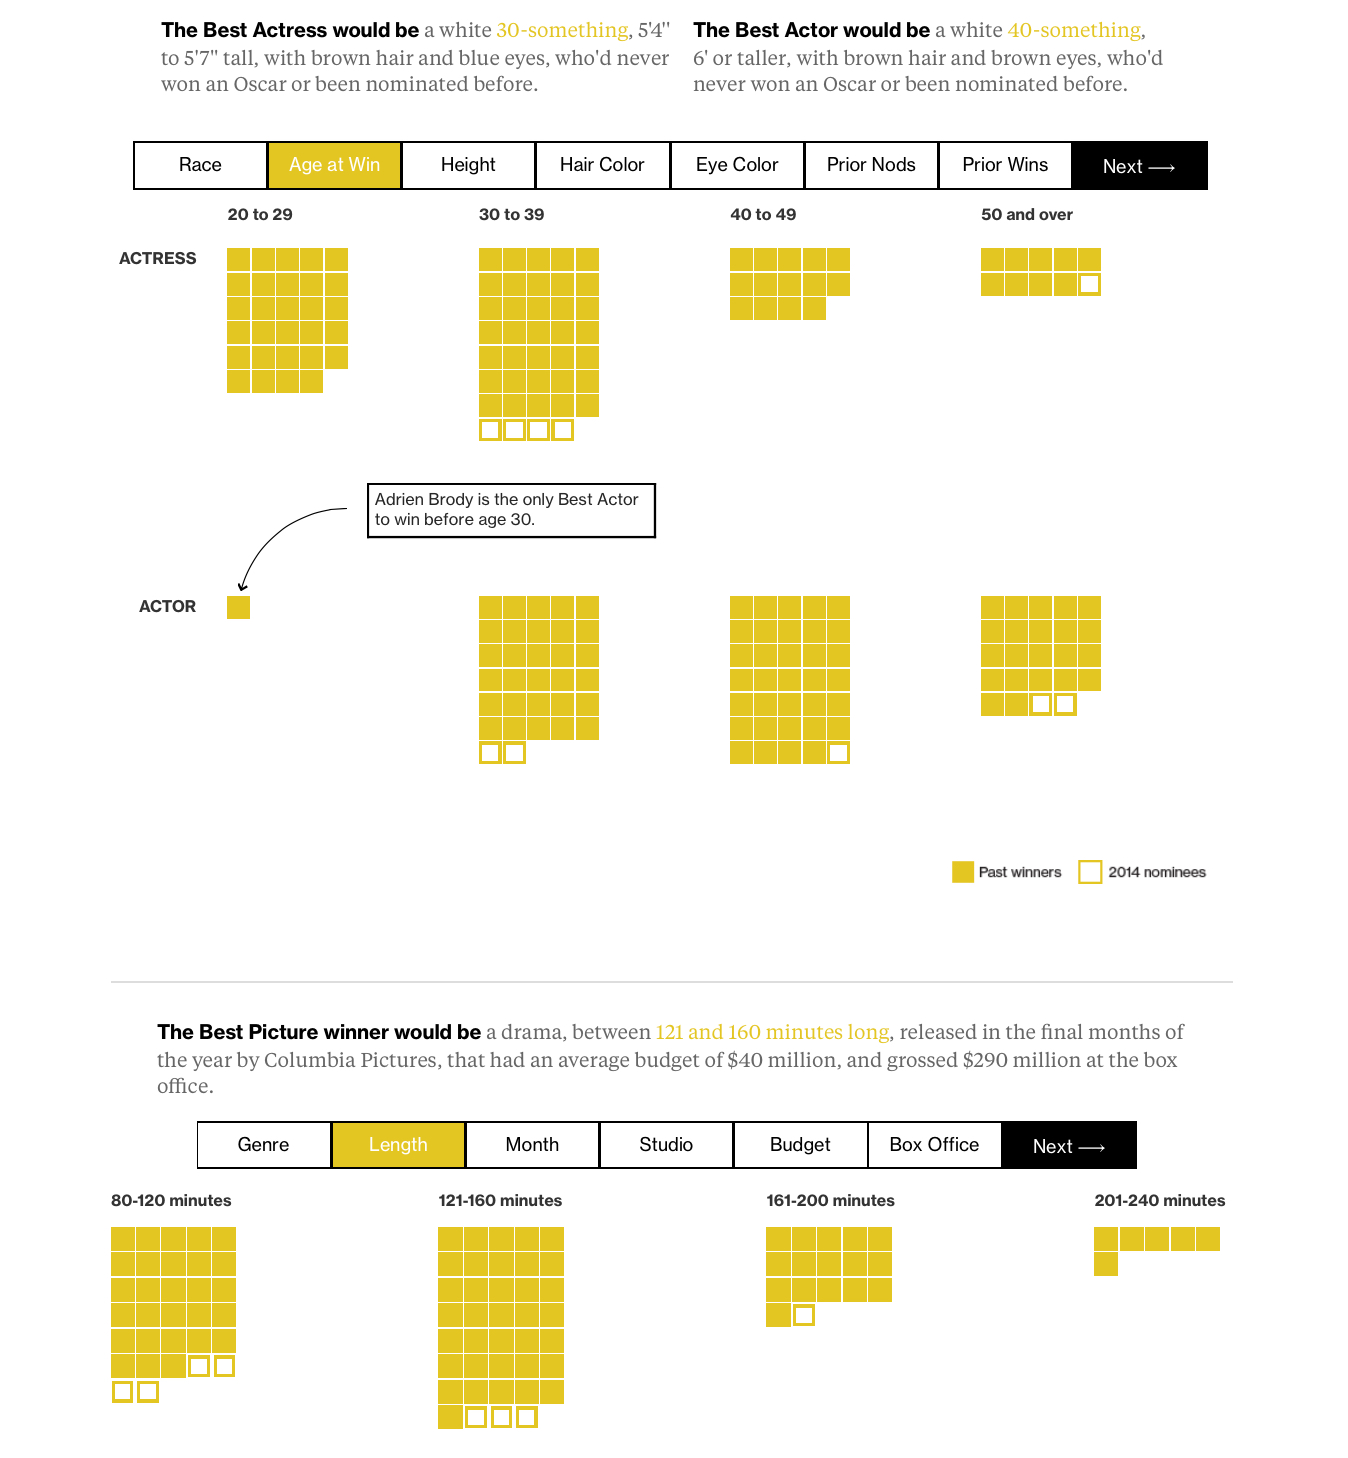 Fromhttp://www.bloomberg.com/graphics/2015-oscar-winners/